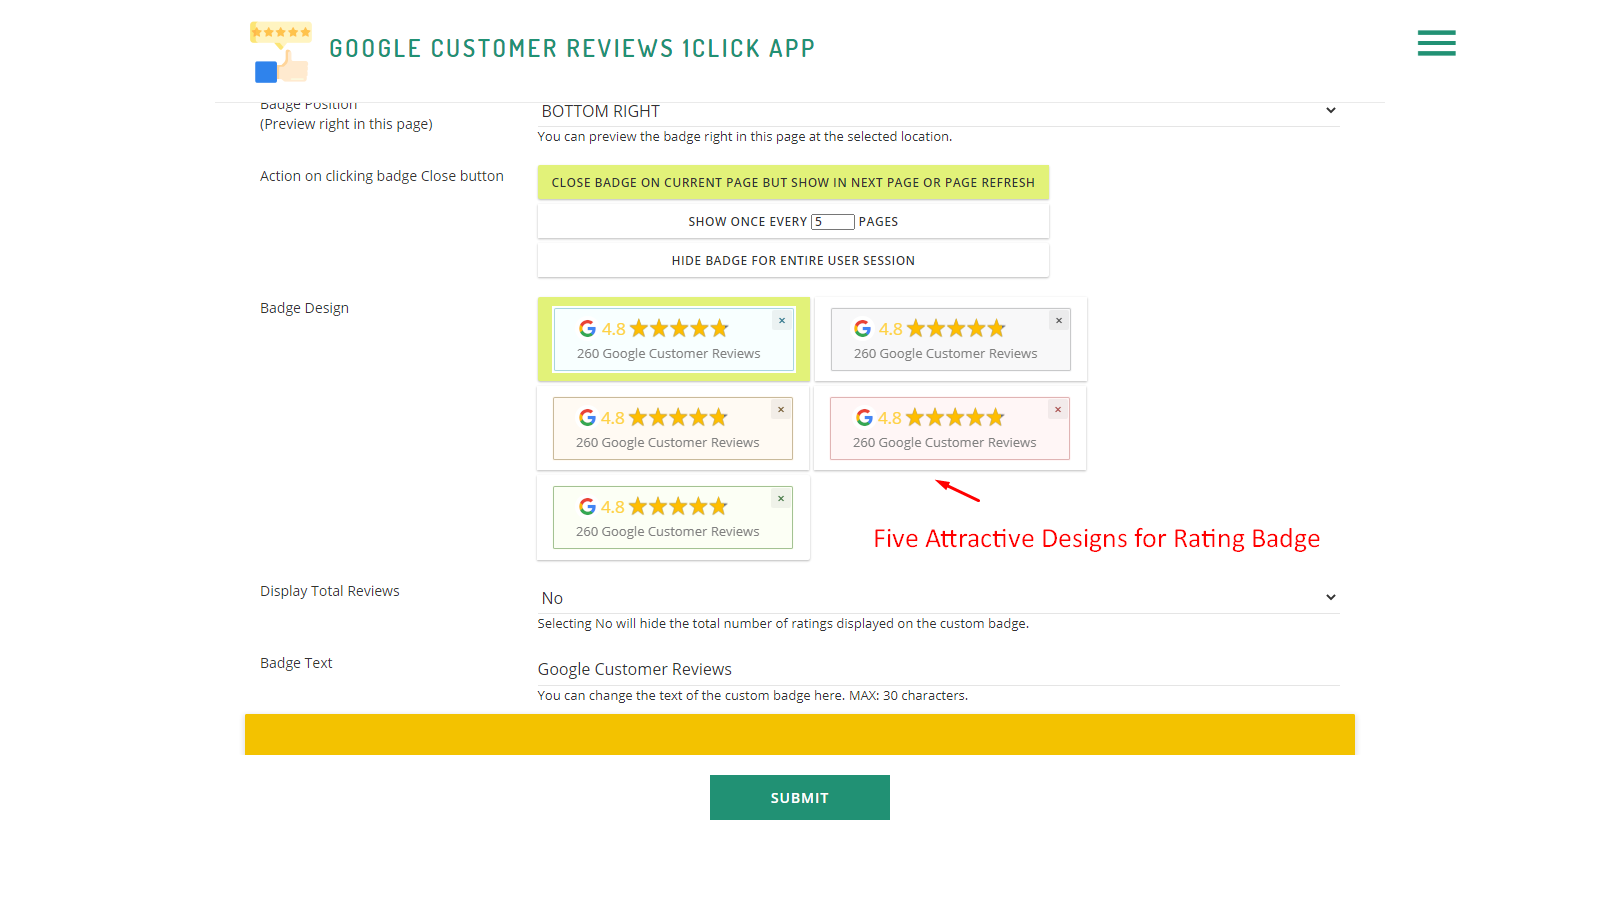 Five Attractive Designs For The Rating Badge